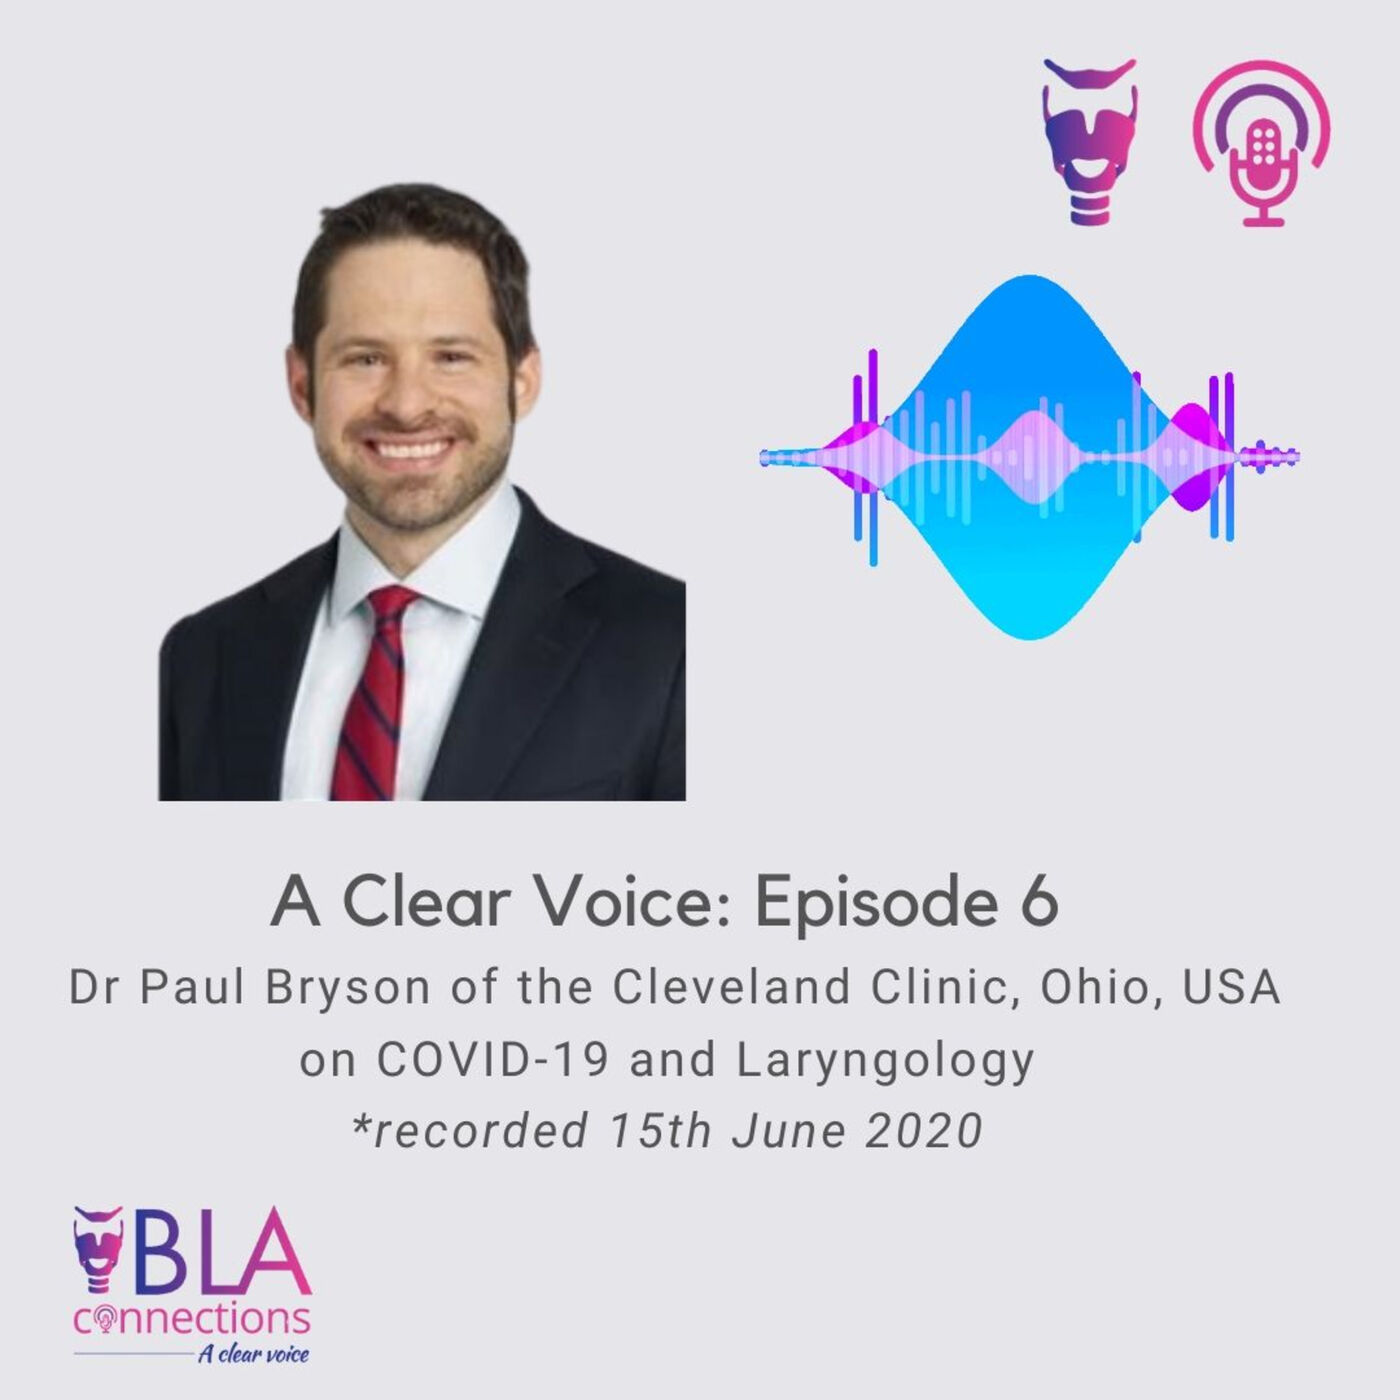 S1 Ep 6: Dr Paul Bryson of the Cleveland Clinic, Ohio, USA on COVID-19 and Laryngology